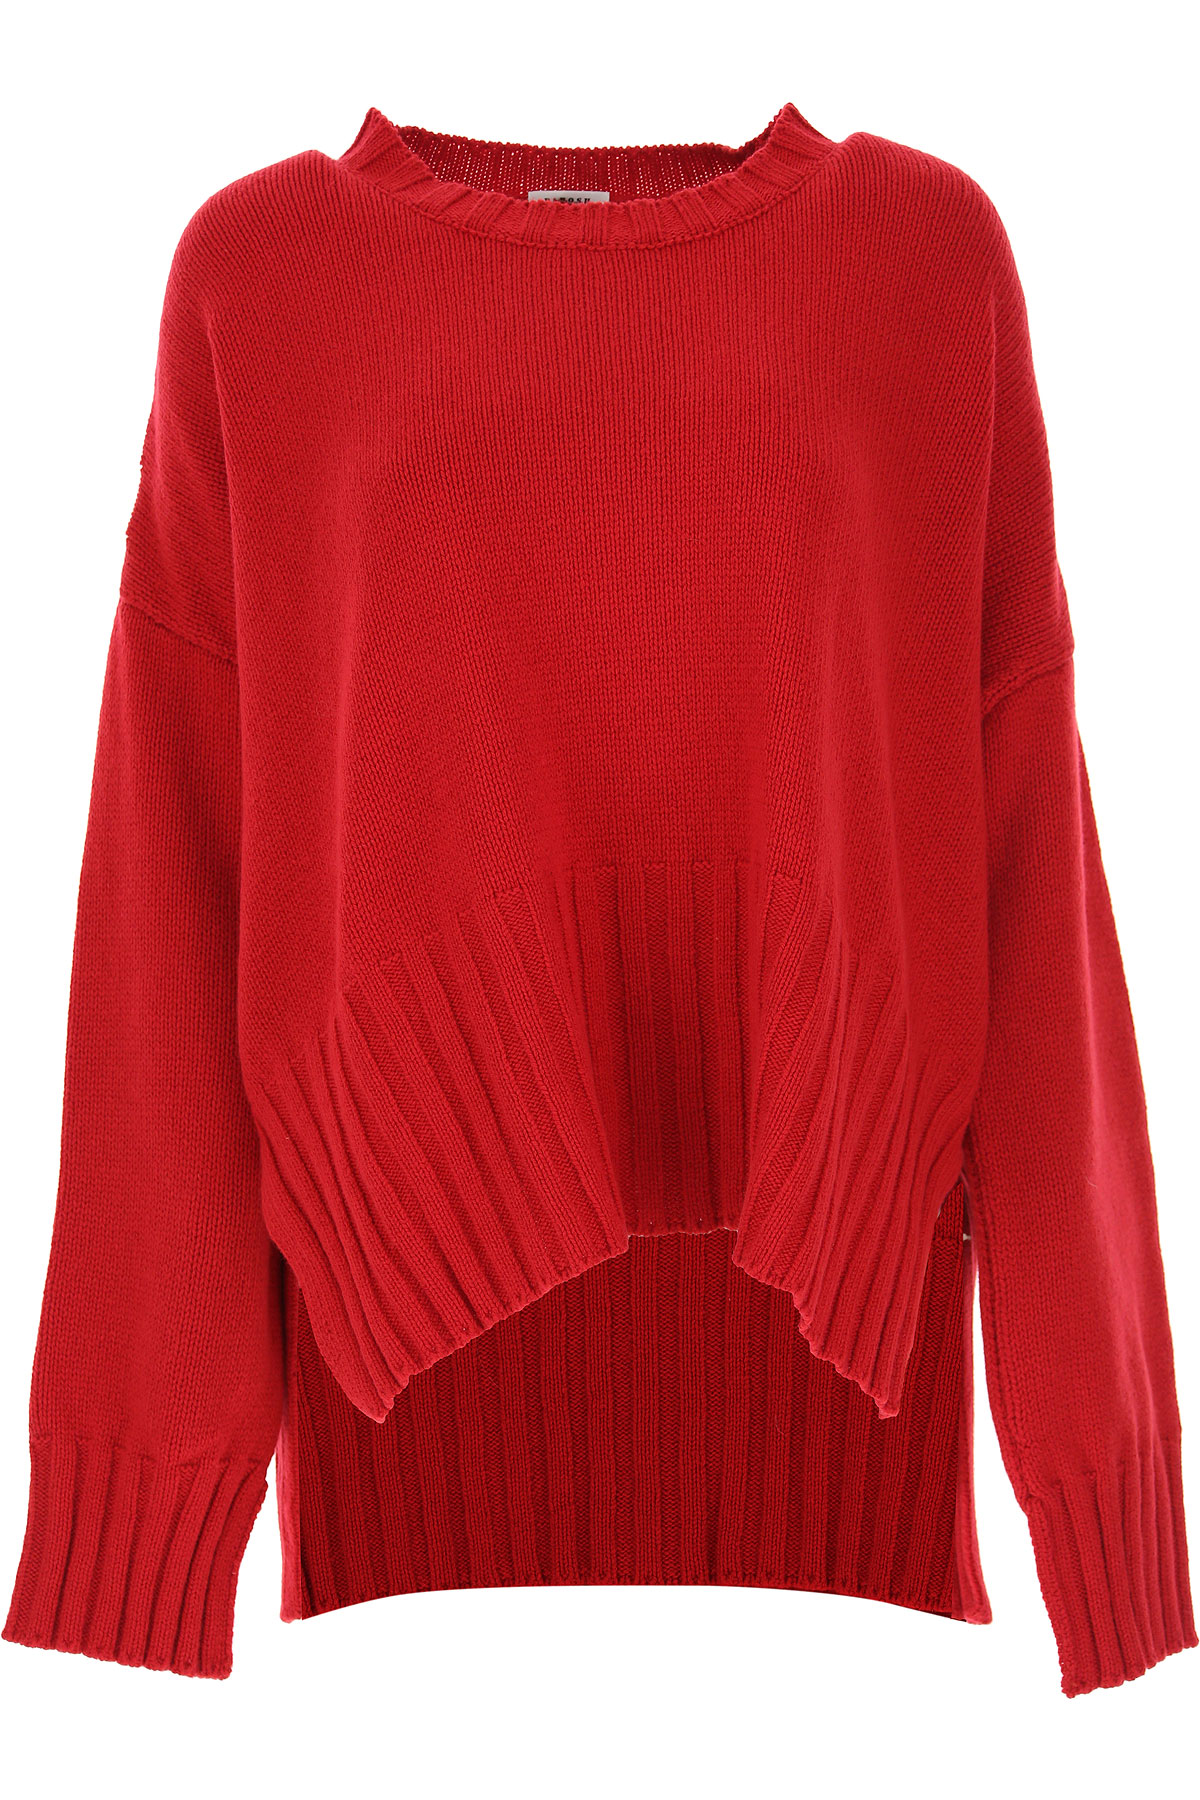 P.A.R.O.S.H. Sweater for Women Jumper On Sale, Red, Wool, 2019, 4 6